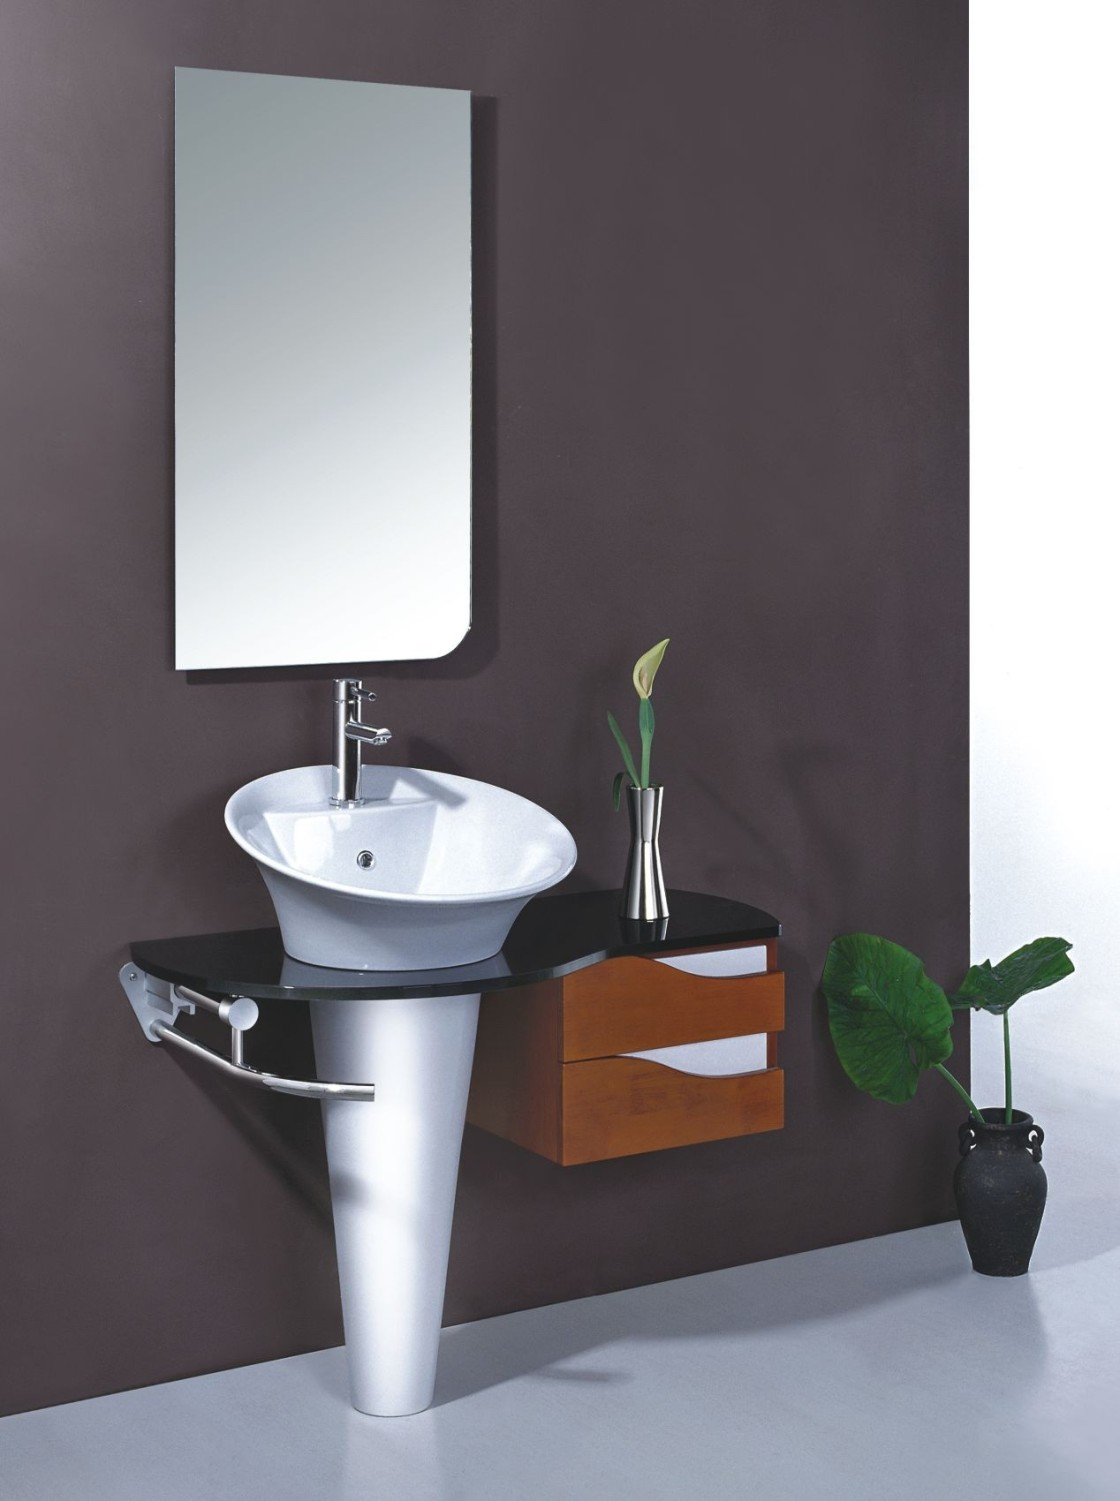 Small Side Table and White Sink Used in Stylish Bathroom with Clear Wall Mirror on Grey Wall